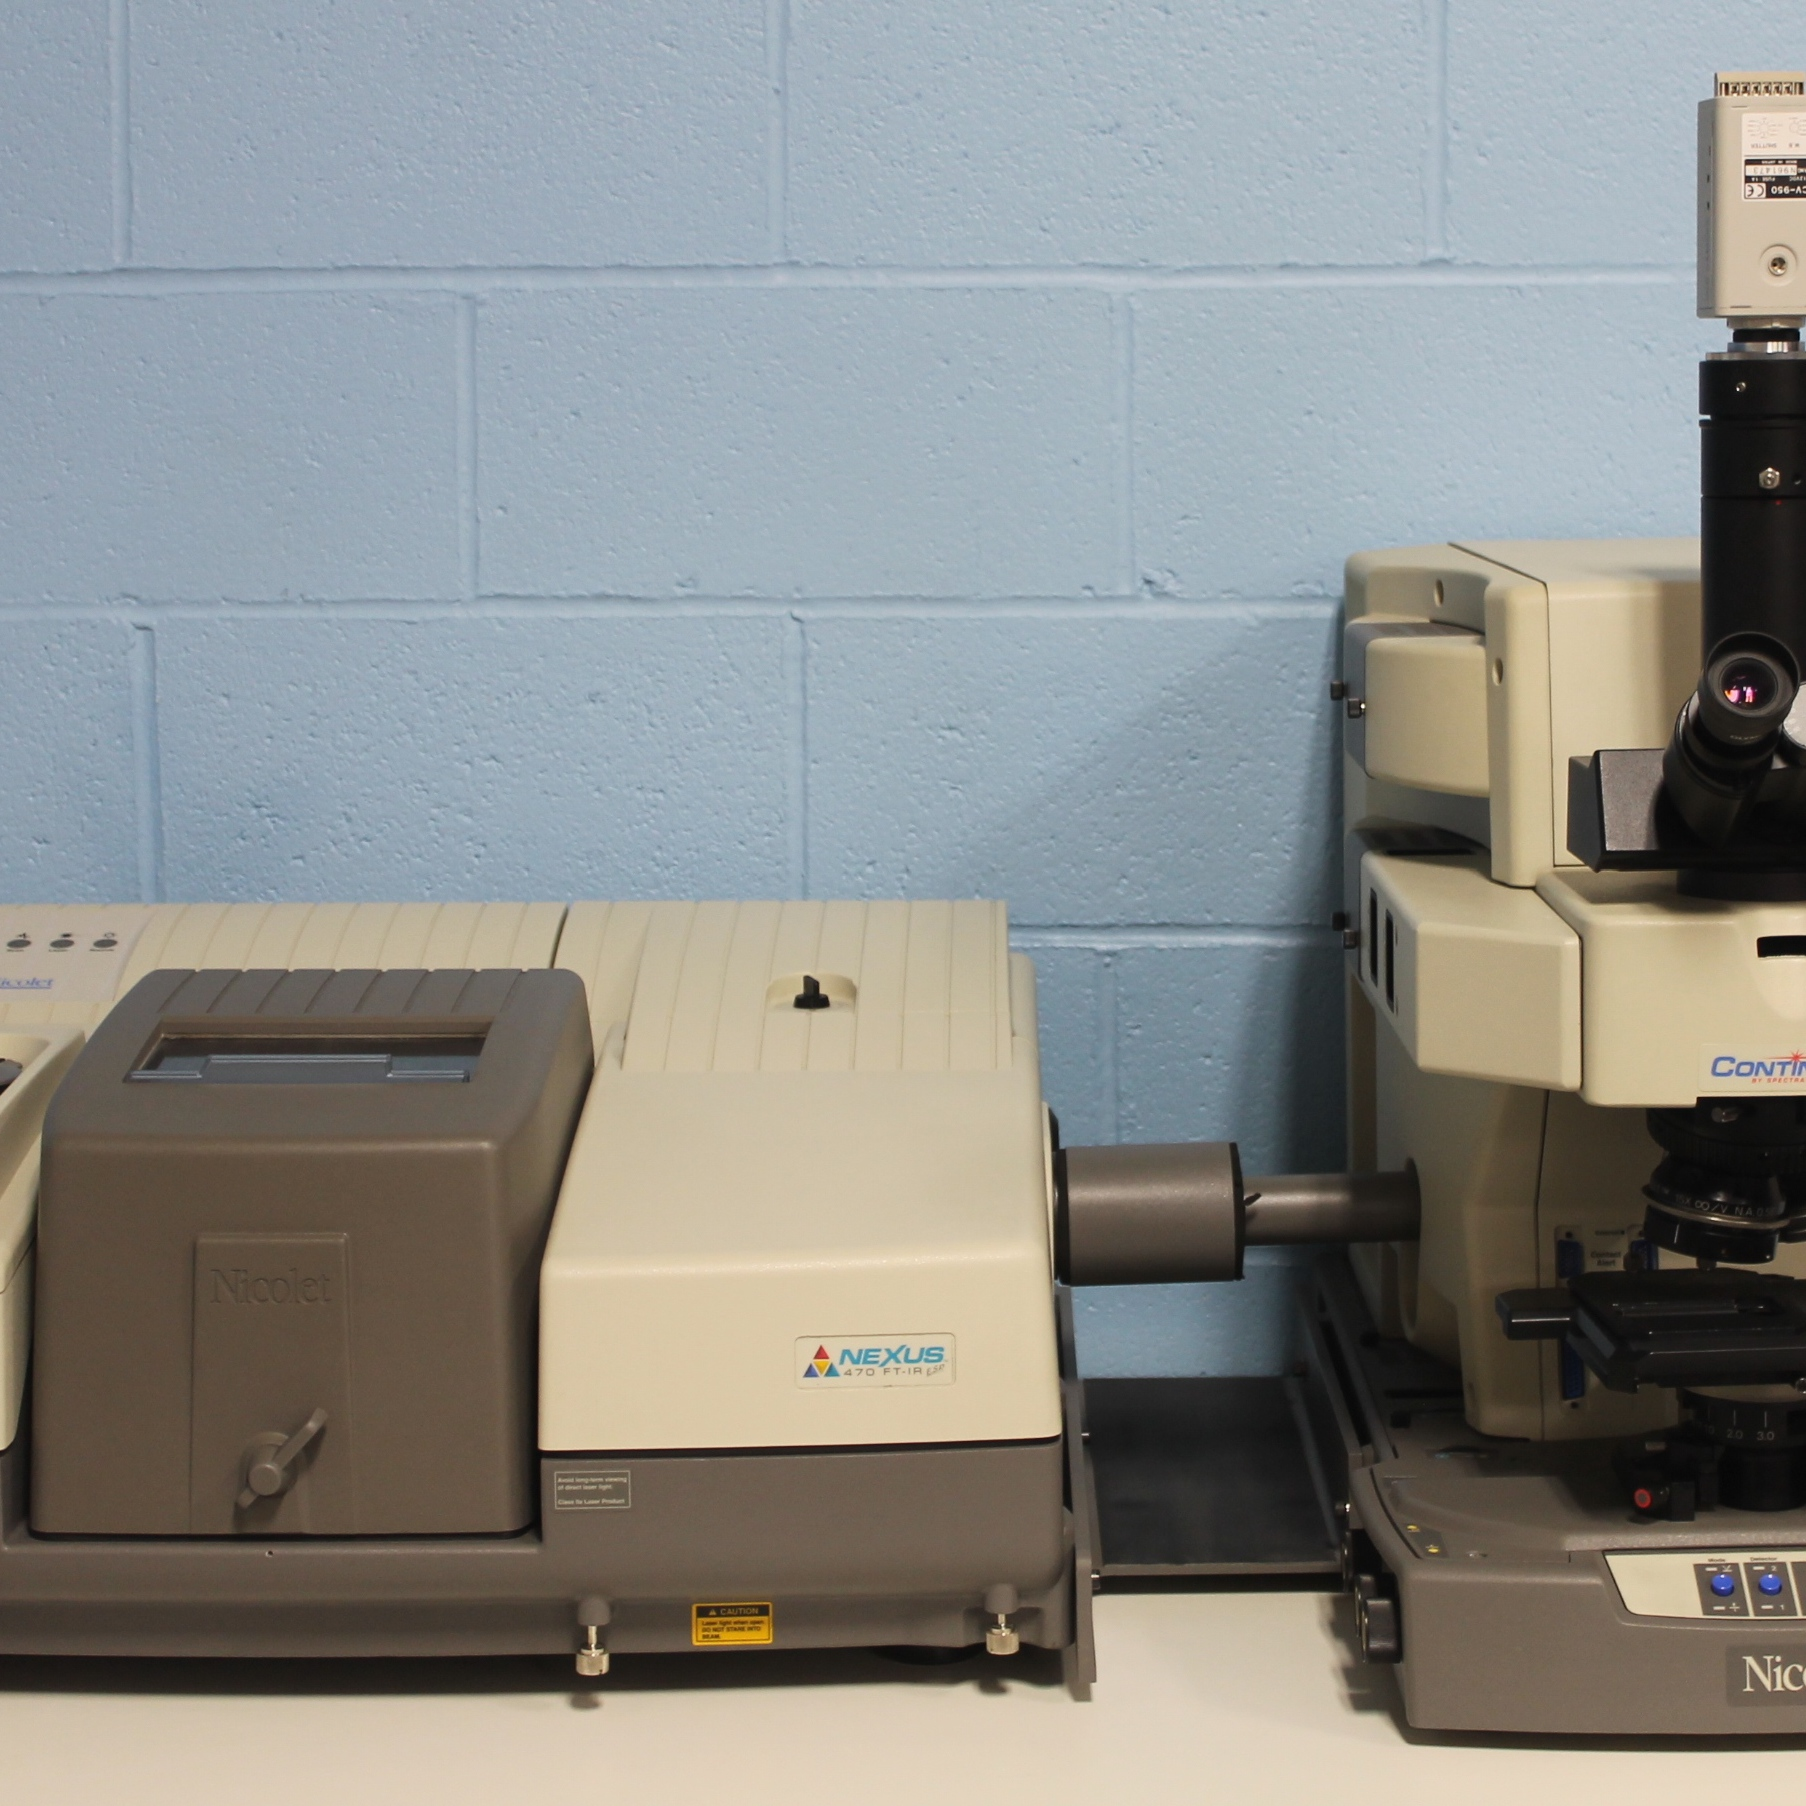 Nicolet Nexus 470 ESP FT-IR Spectrometer with Spectra-Tech Continuum FT-IR Microscope System Image